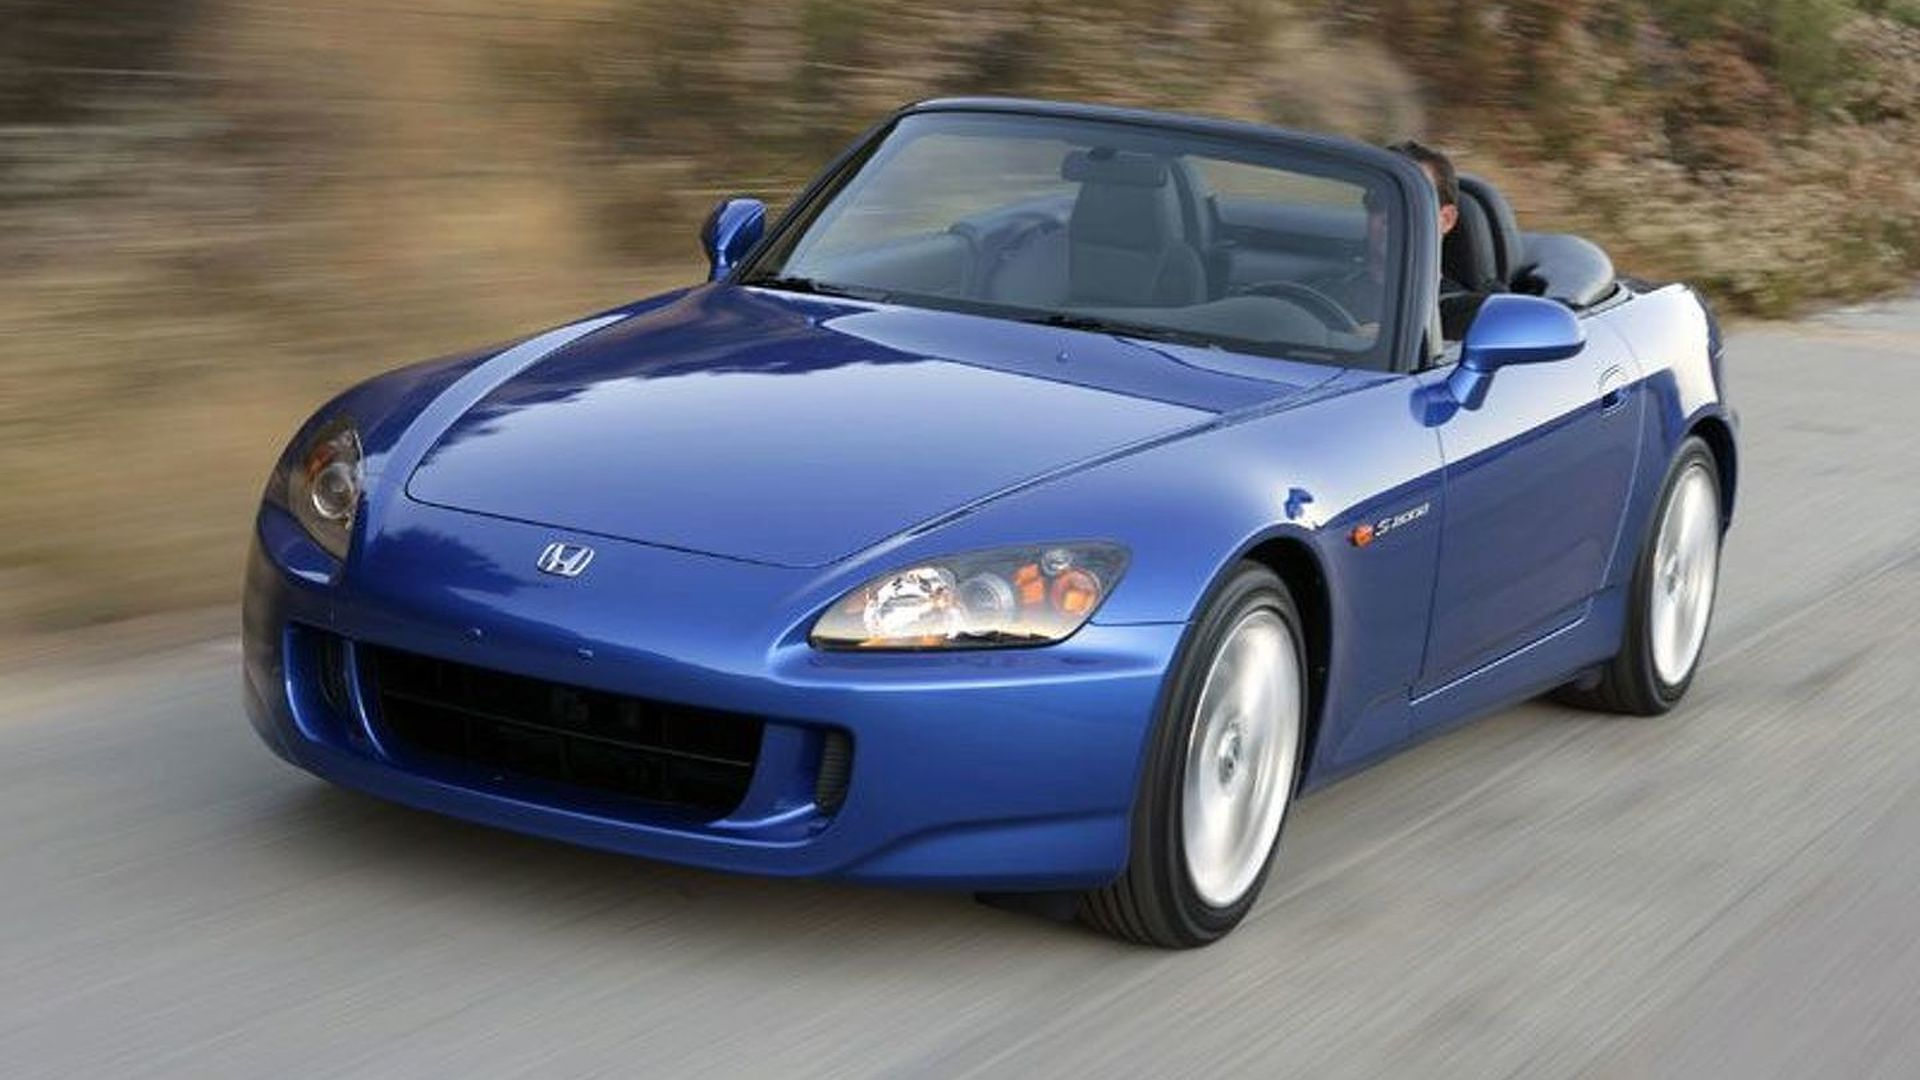 Honda S2000 Reportedly Coming Back With Civic Type R Engine